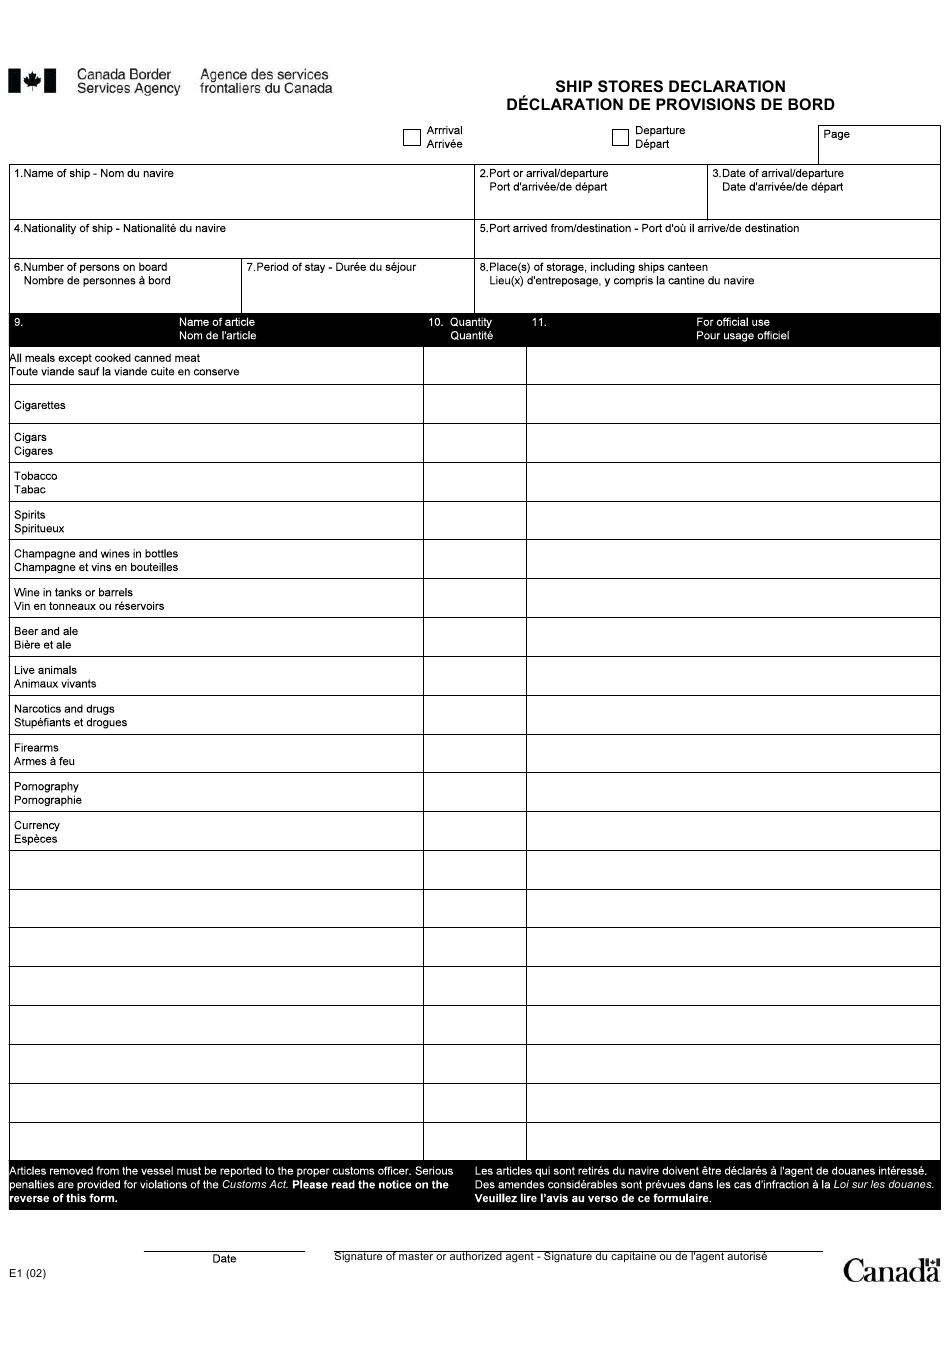 form e1 download fillable pdf or fill online ships stores